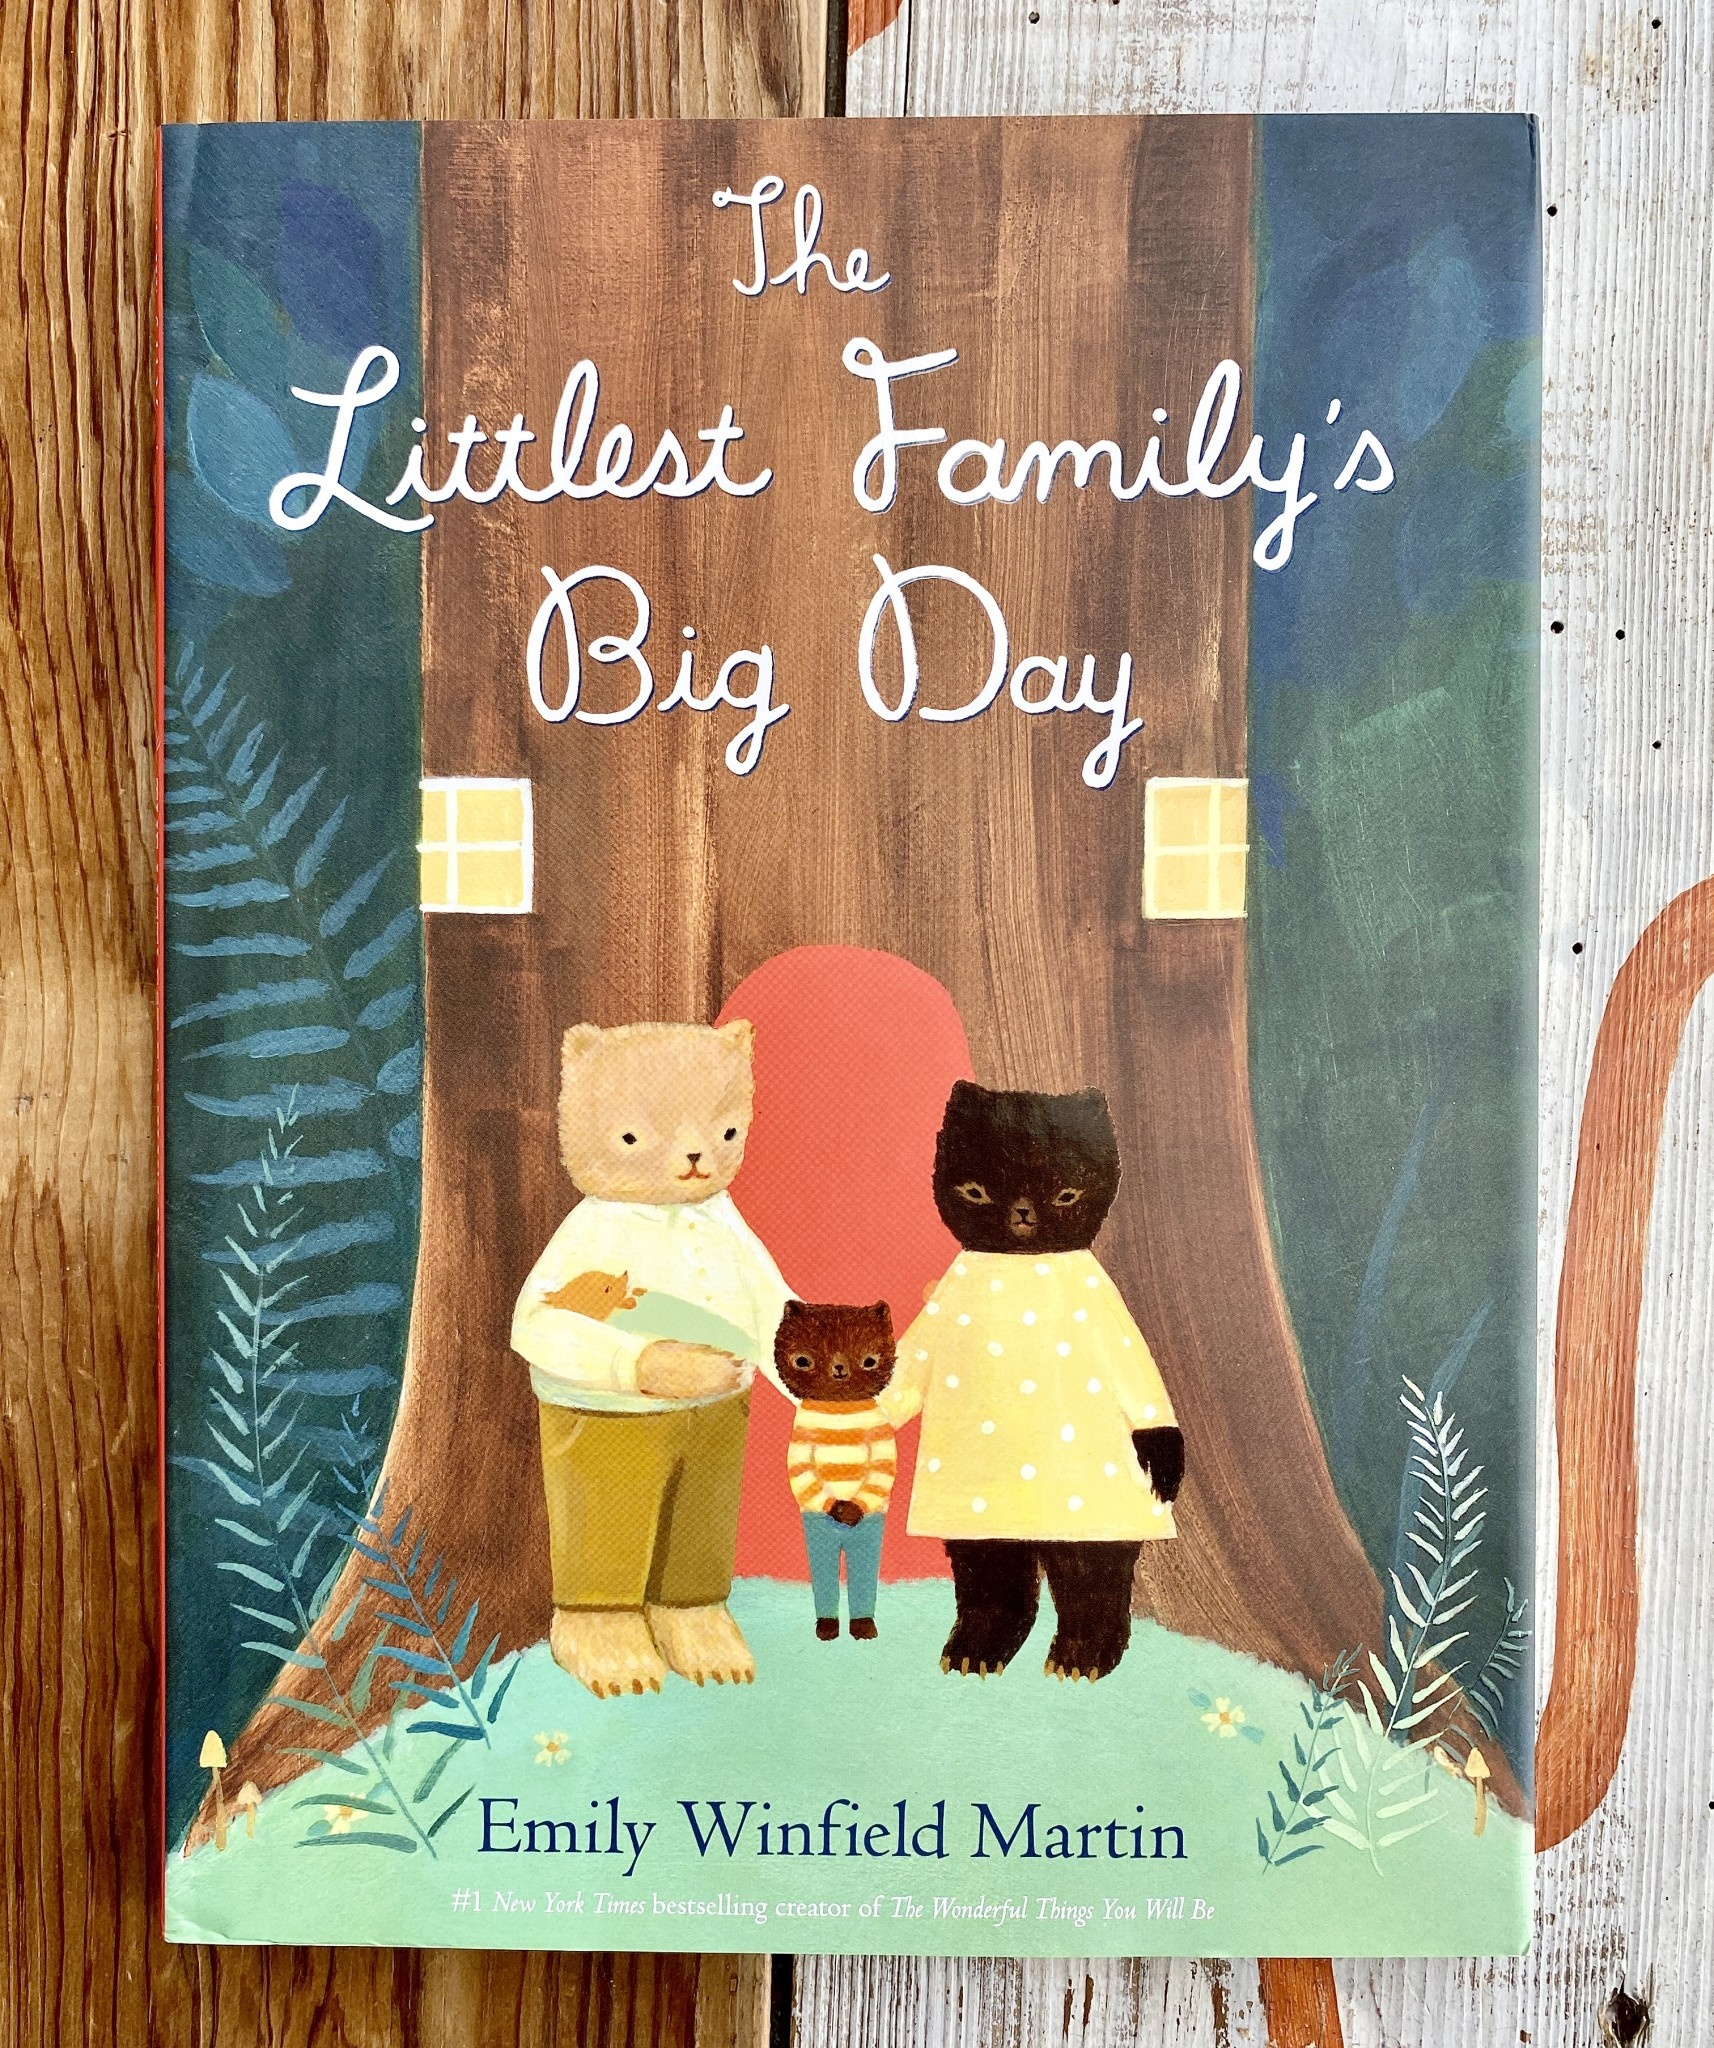 The Black Apple The Littlest Family's Big Day Book - Emily Winfield Martin